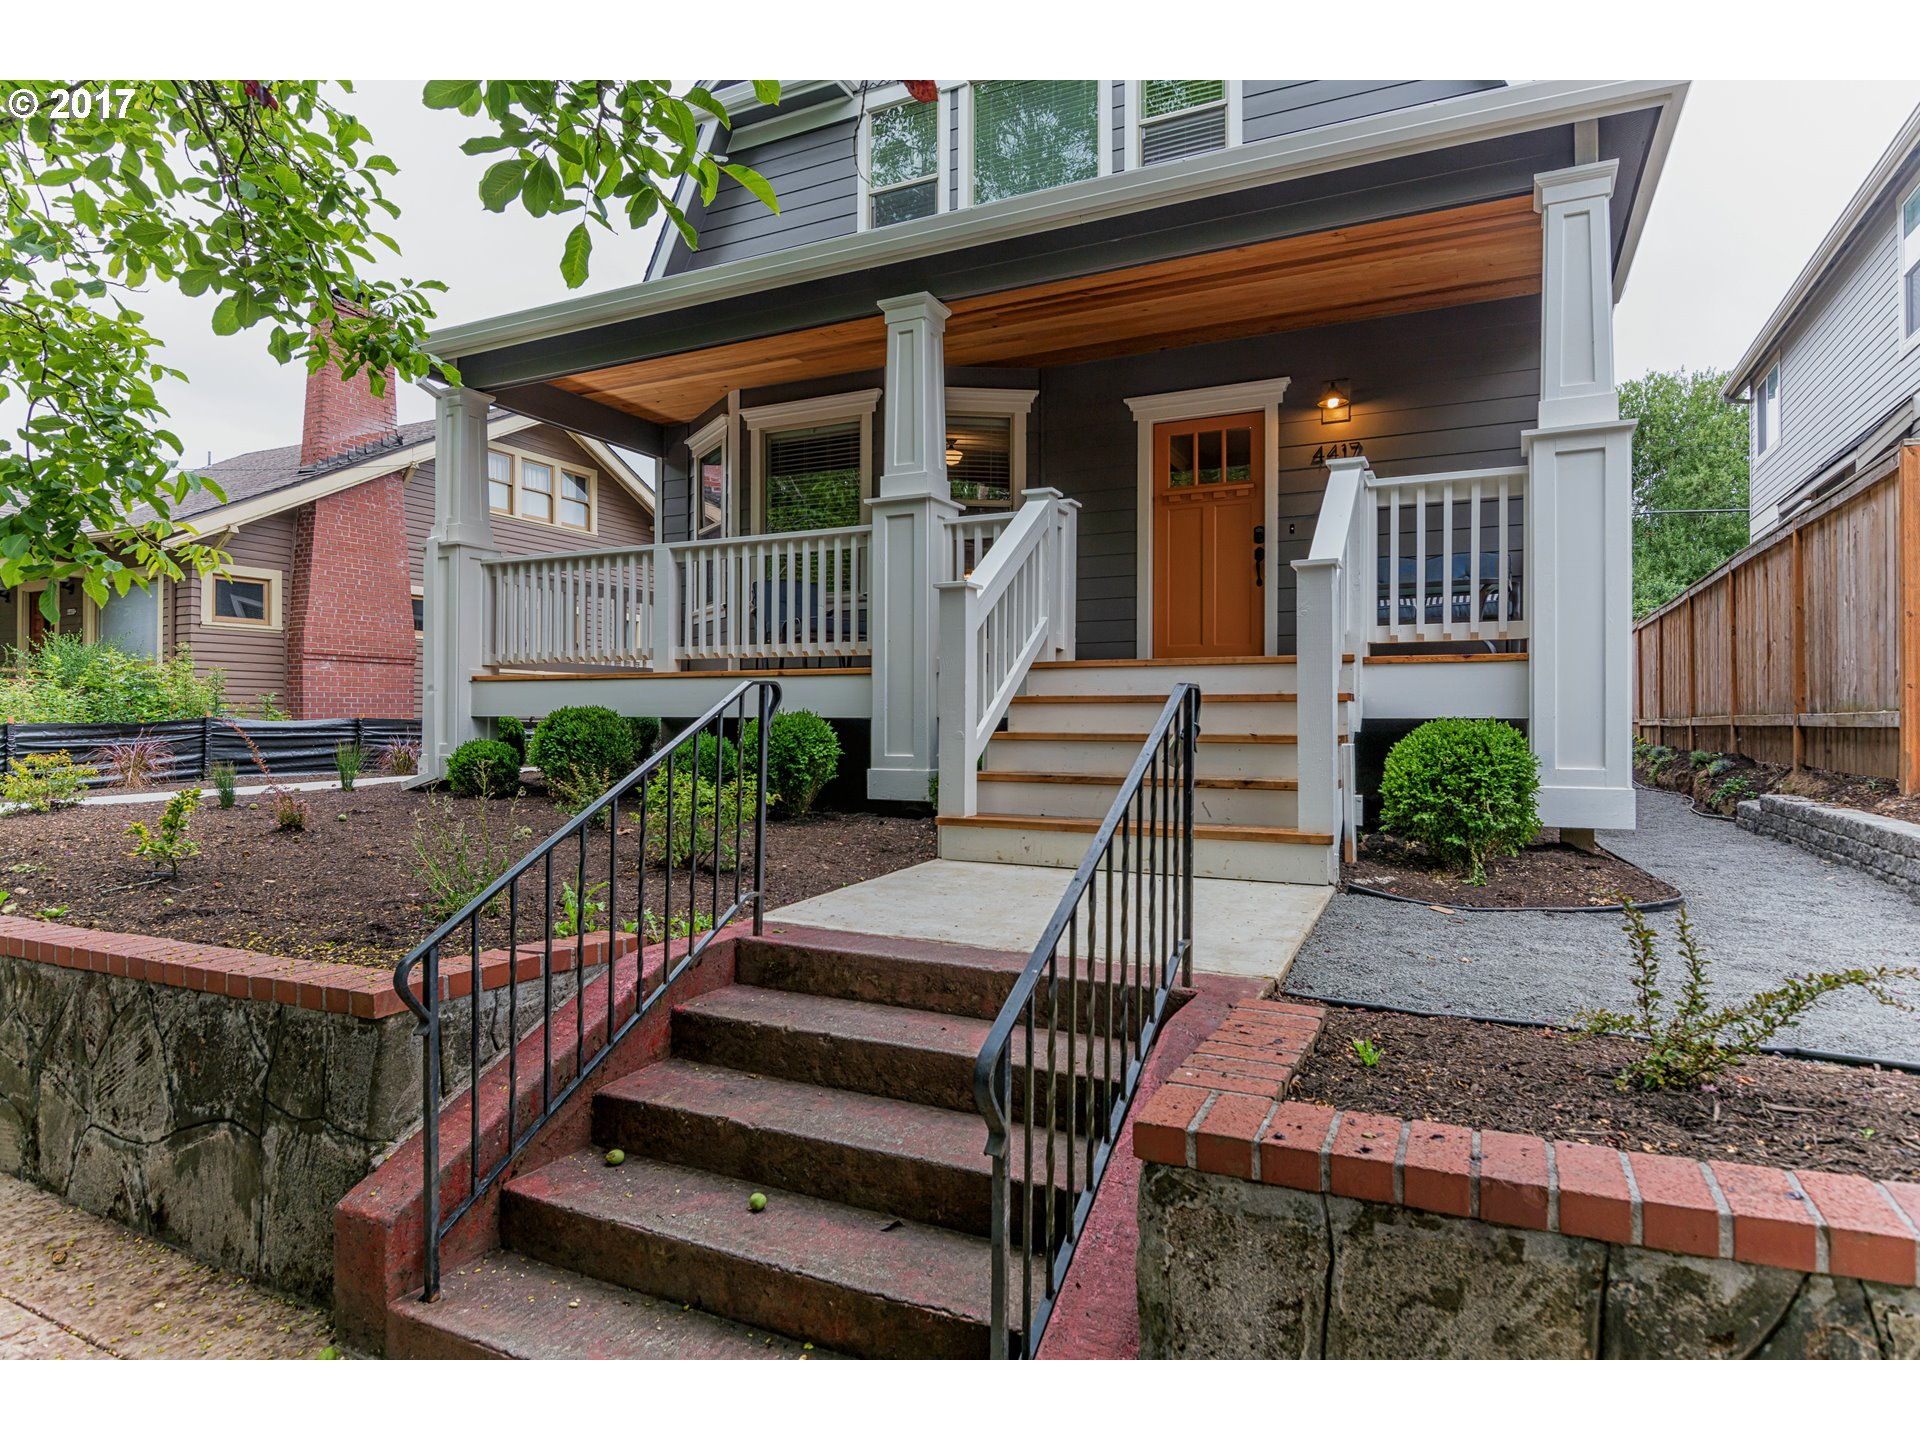 Completely remodeled Portland classic bike score 94, min to N Miss/Williams districts. Bedroom & full bath on main plus beautifully refinished H/W flrs, FP, bay windows, dining area w/open kitchen. House: 4 beds & 3 full baths. Basement: Mother-in-law suite-kitchen, LR, 2 bed & full bath w/ext entrance. Addt'l 904sf is permitted 2-story ADU in back w/kitchen, LR, 2 beds/1.5 bath. Monthly income $7K. O/H Sat 12/16 & Sun 12/17 11:30-1:30.